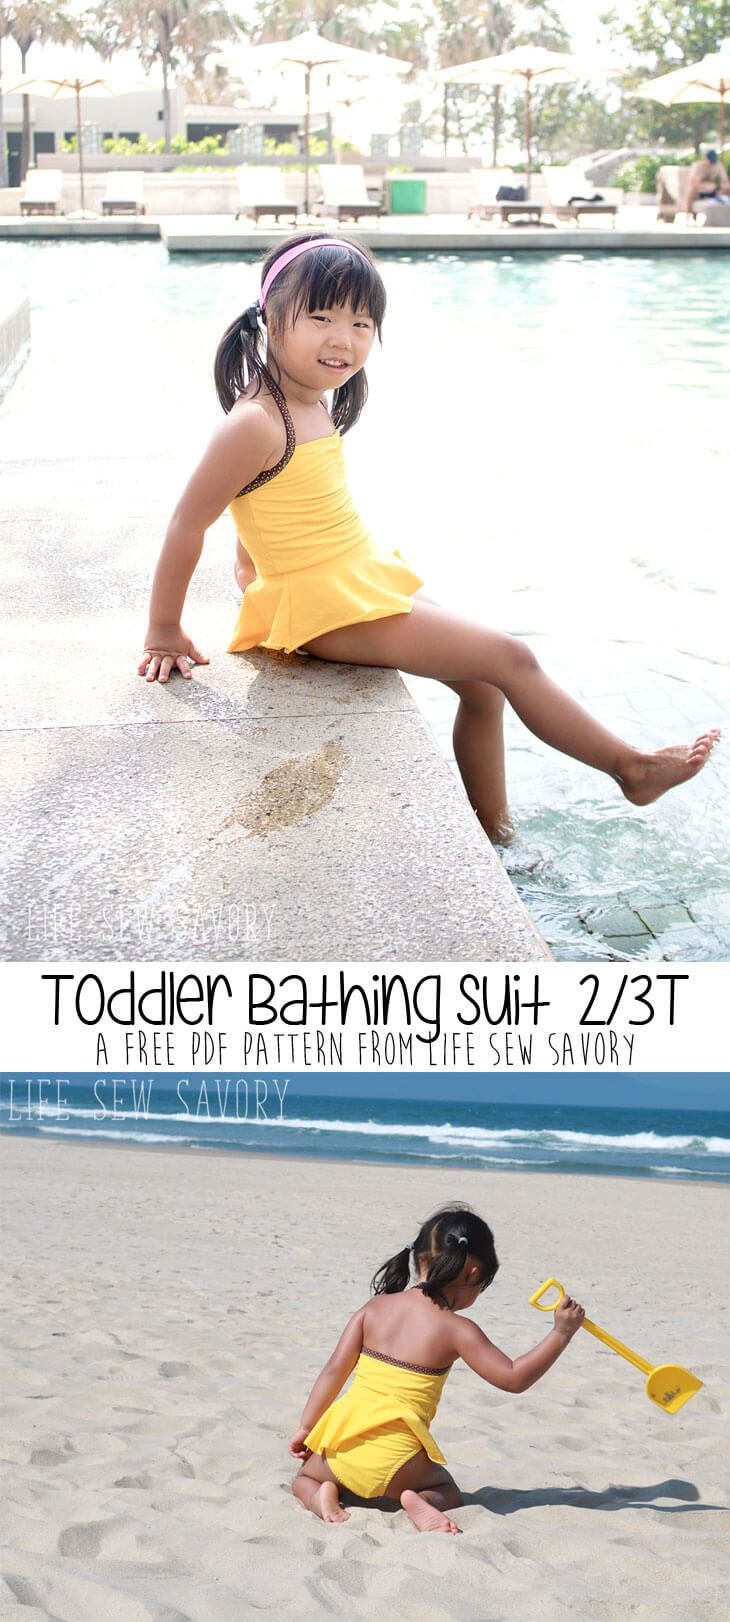 toddler bathing suit pattern from life sew savory a printable pdf ...